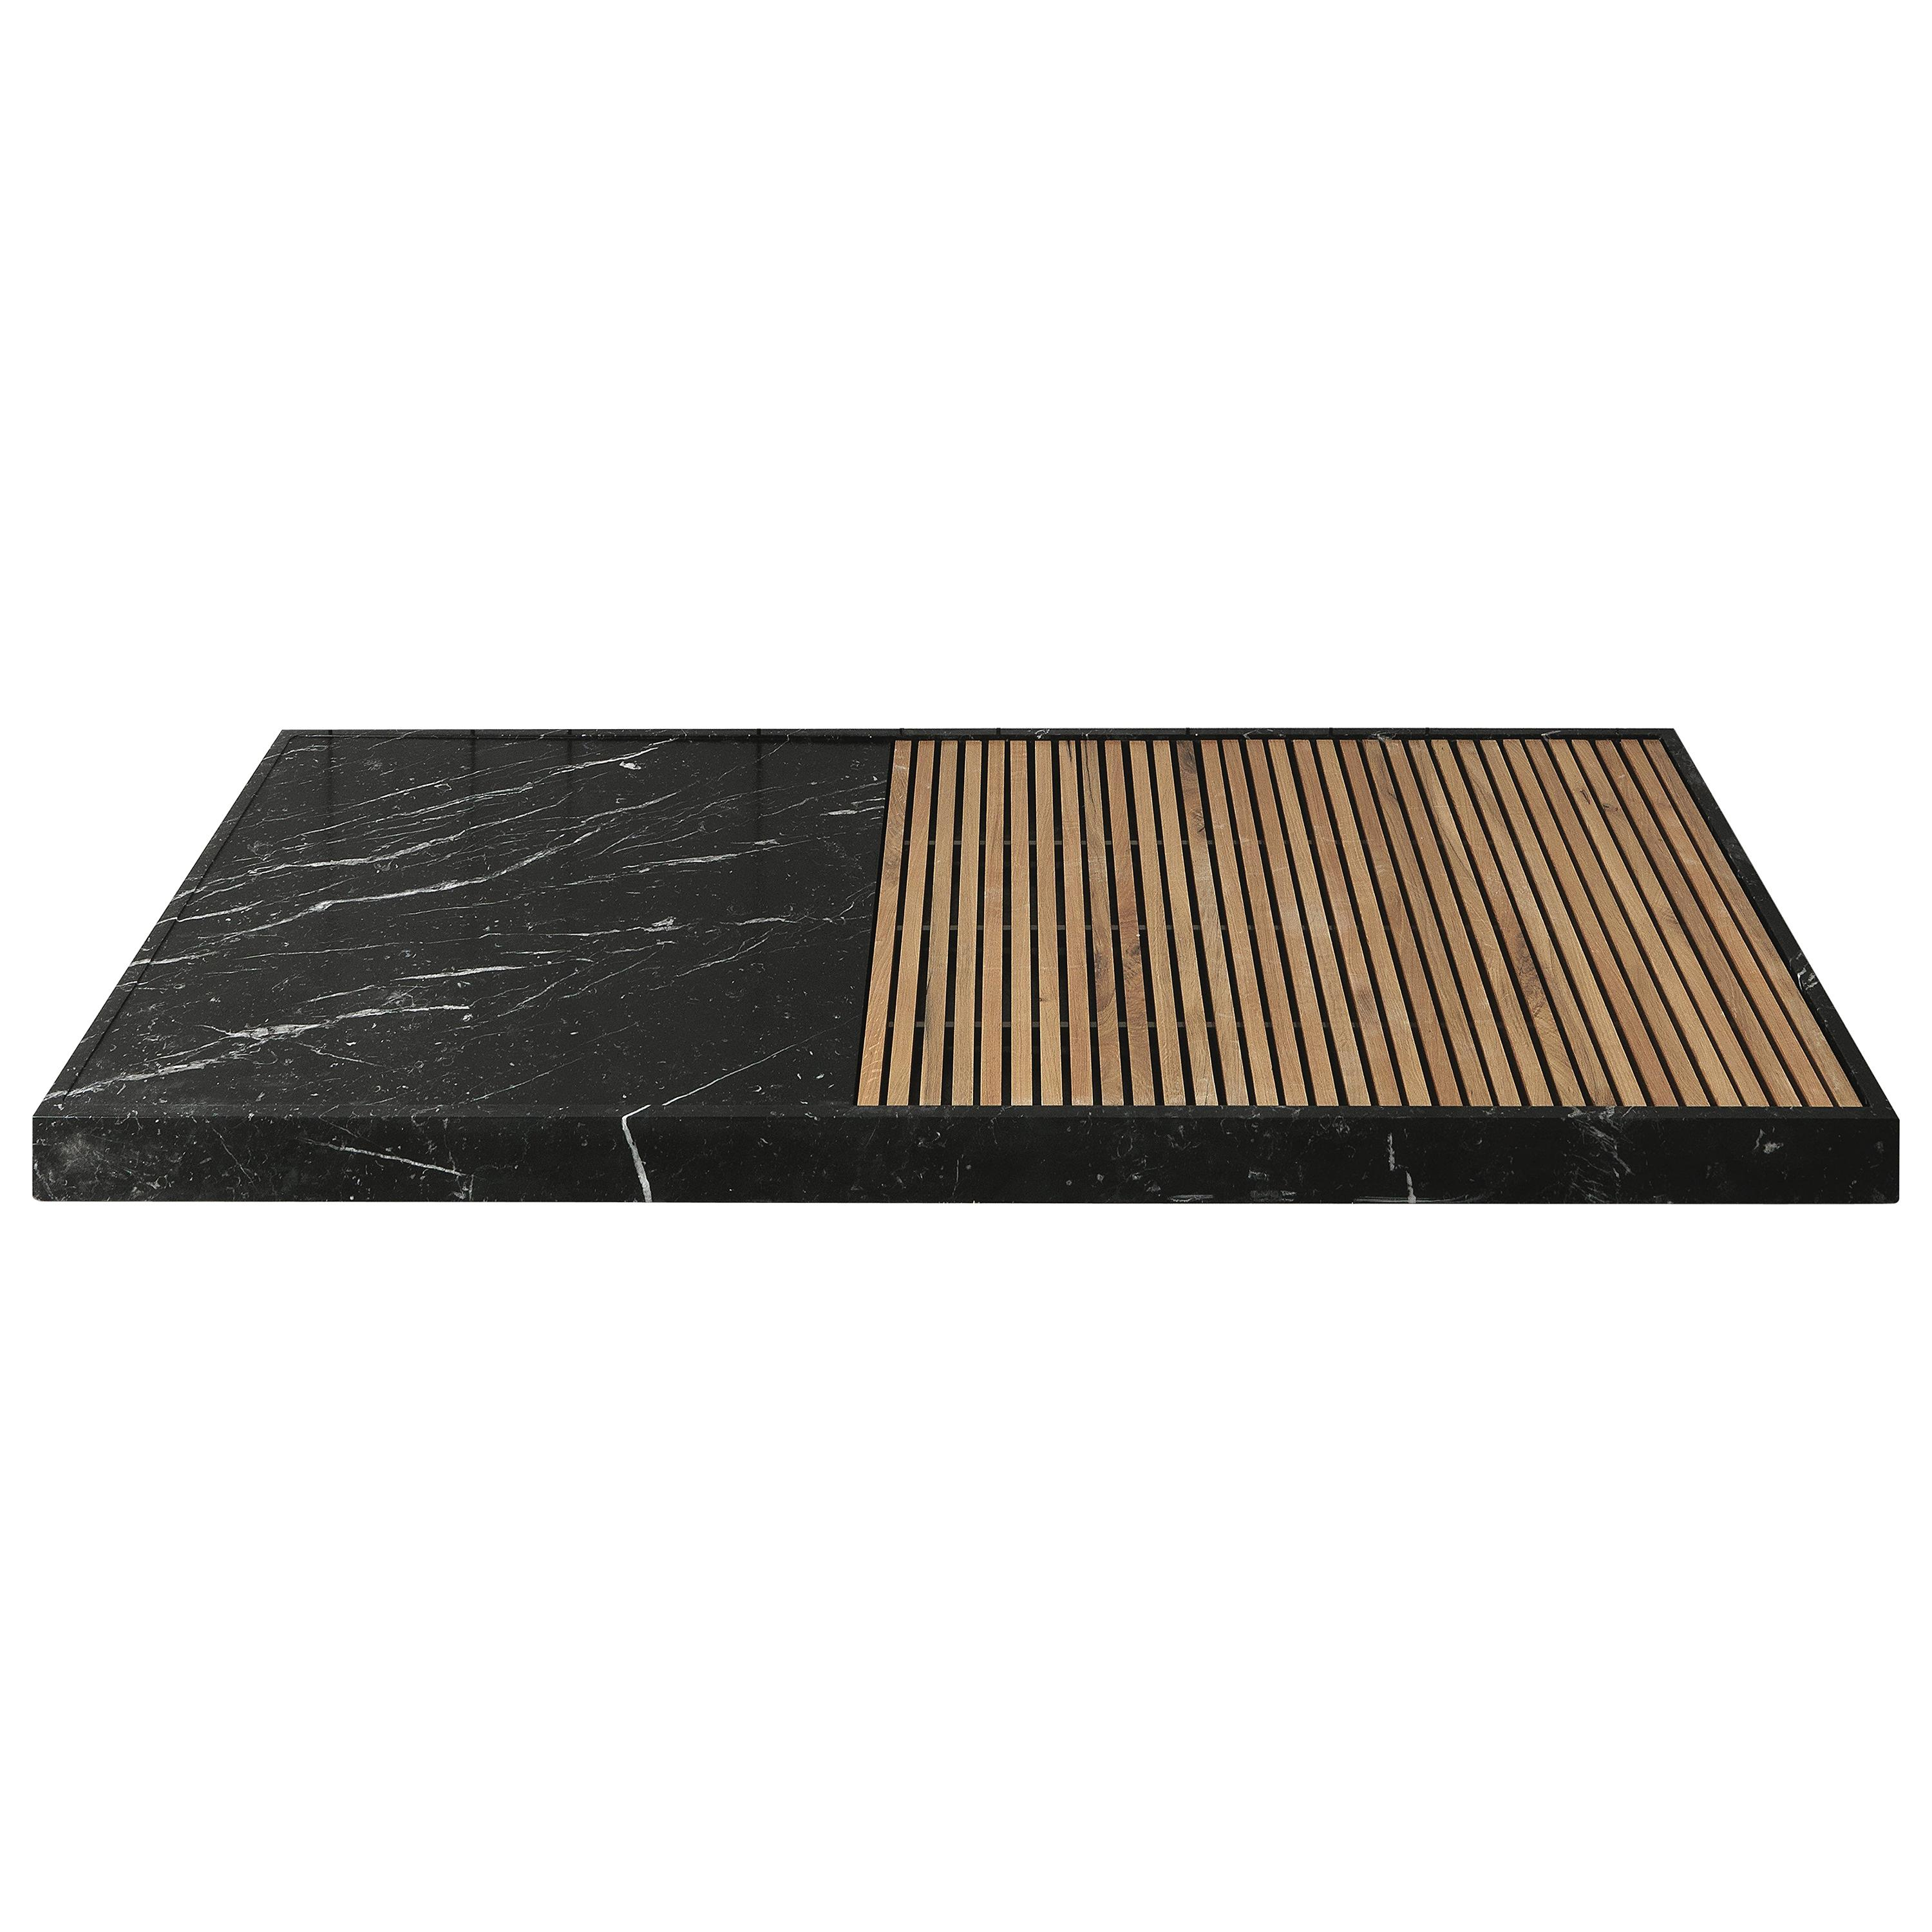 "Shower Tray ""Cambiaro"" Made of Marble and Wood Customizable"